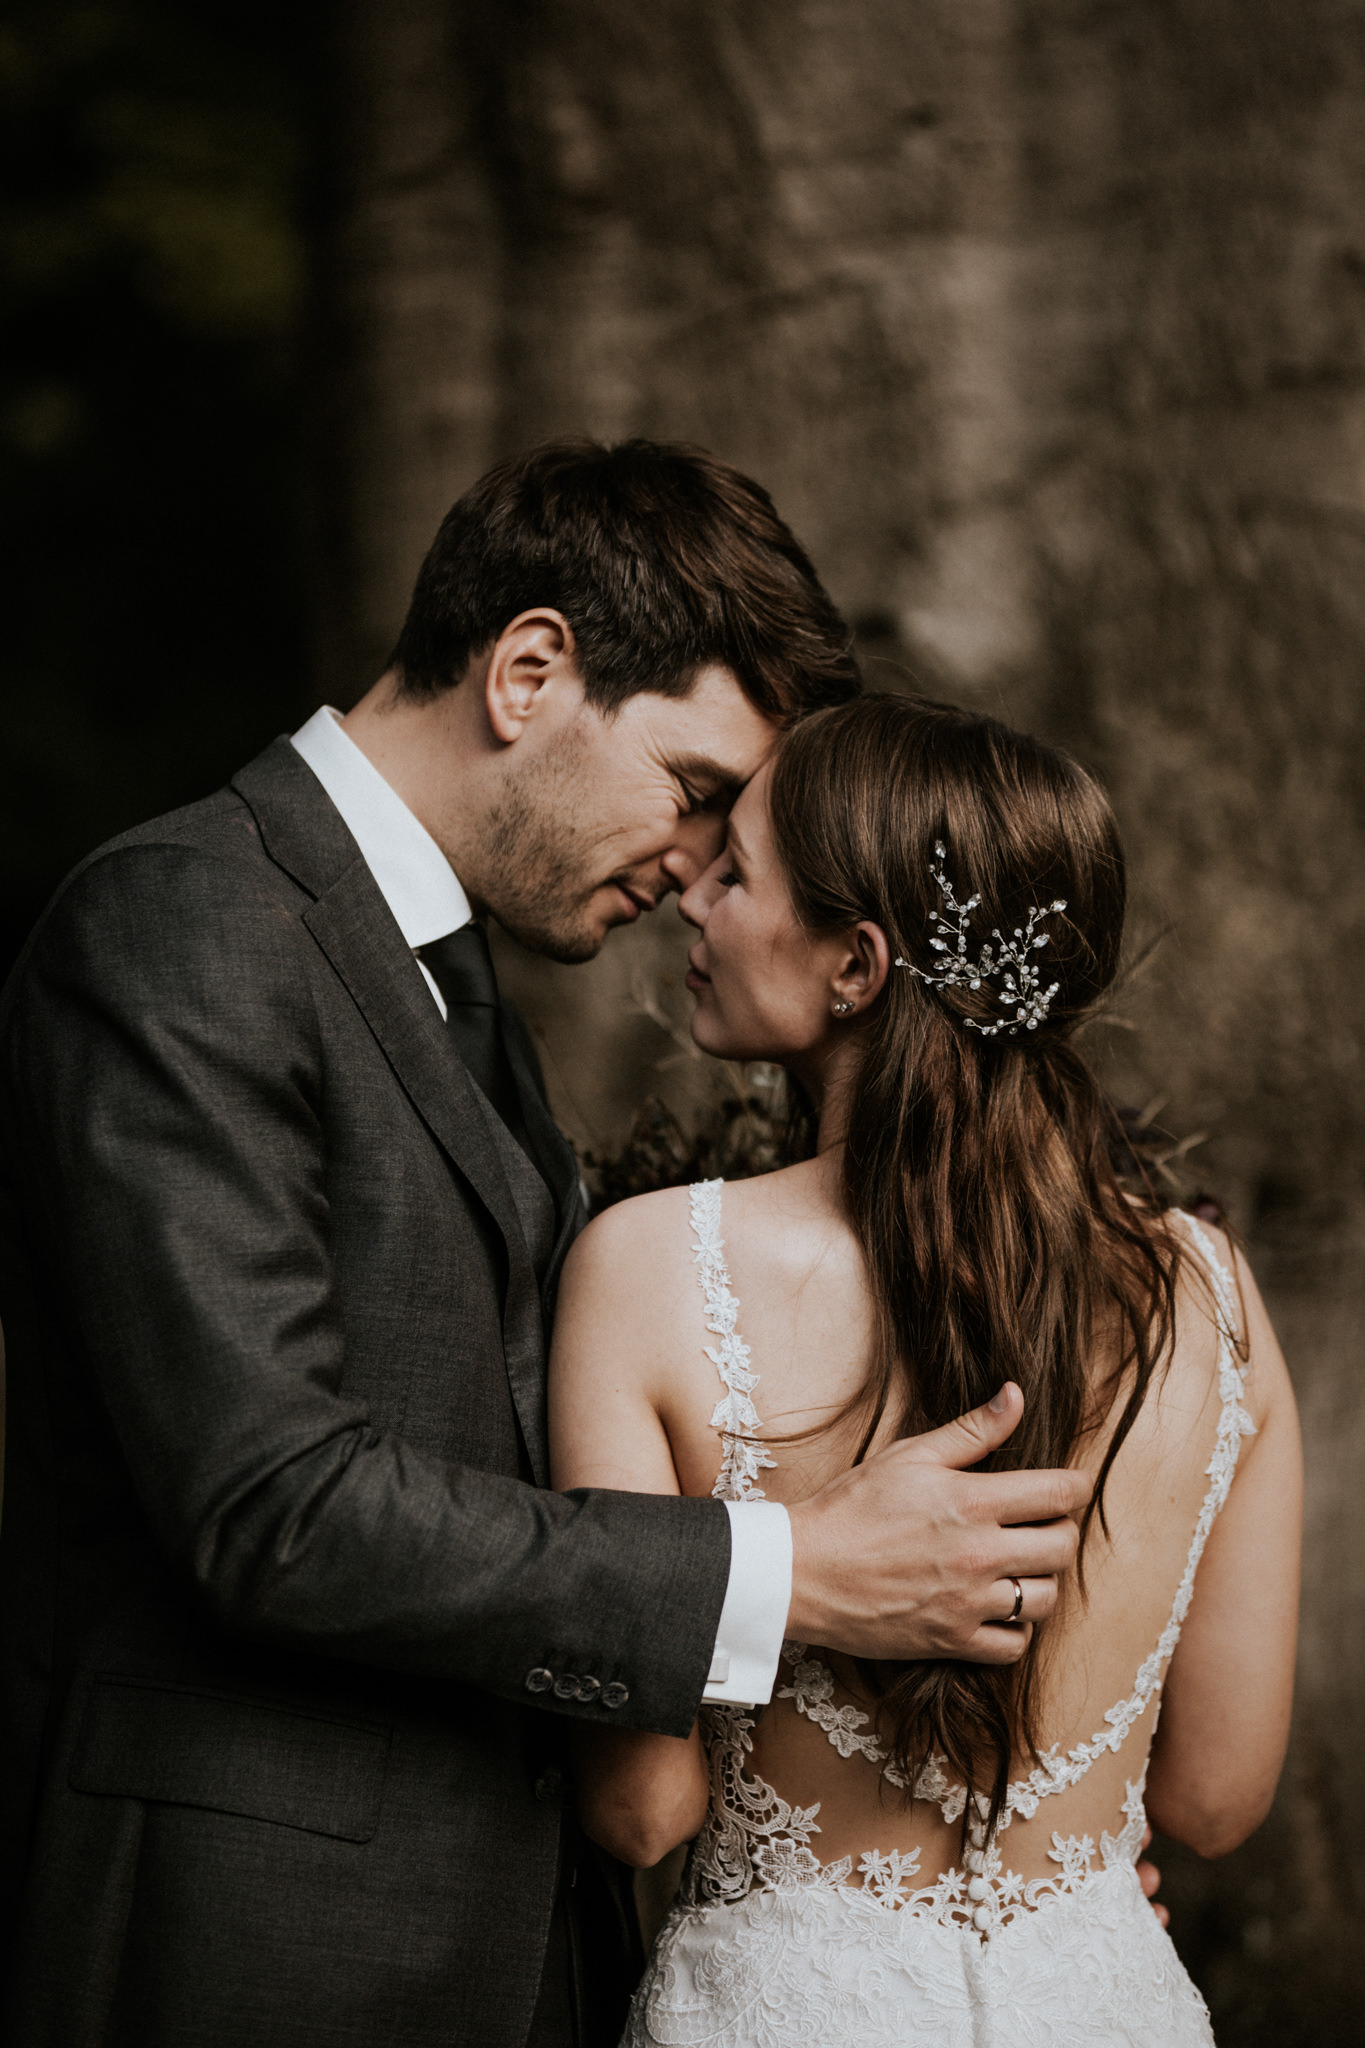 Groom and bride with beautiful hair piece cuddling in the Scottish woods